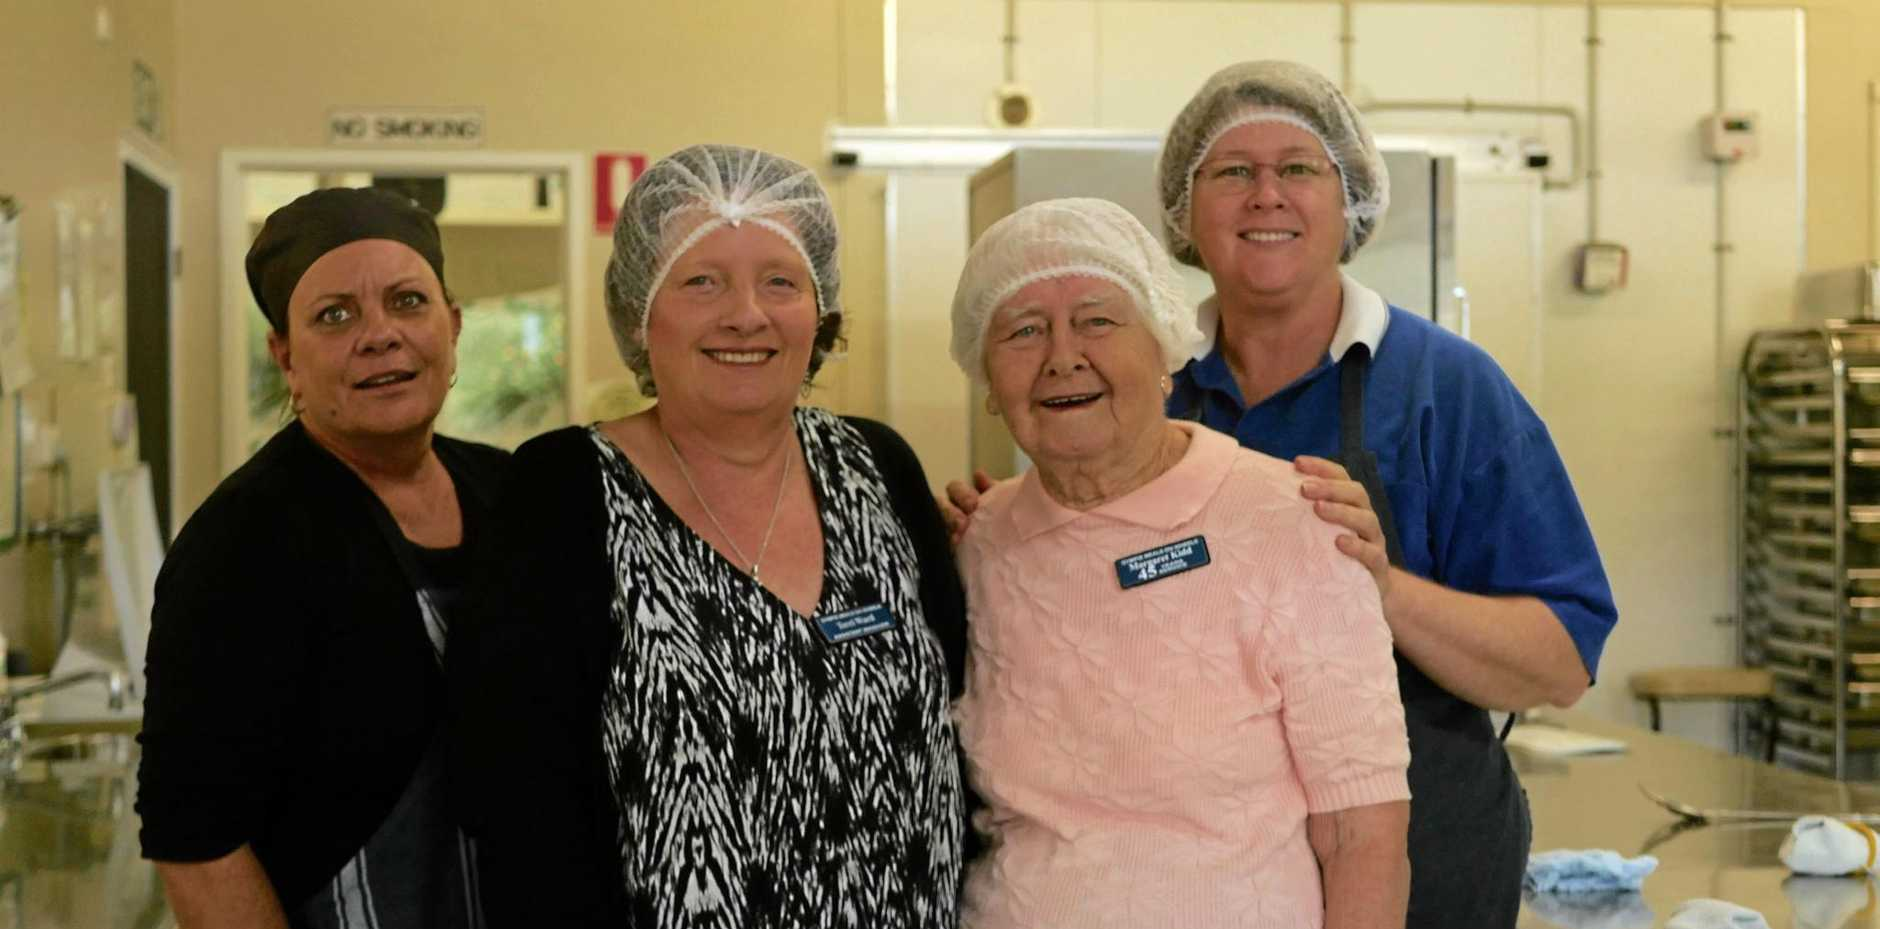 SERVING HELPING HAND: Barb Brook, Terri Ward, Margaret Kidd and Dianne Wood pitch in at the Gympie Meals on Wheels centre.